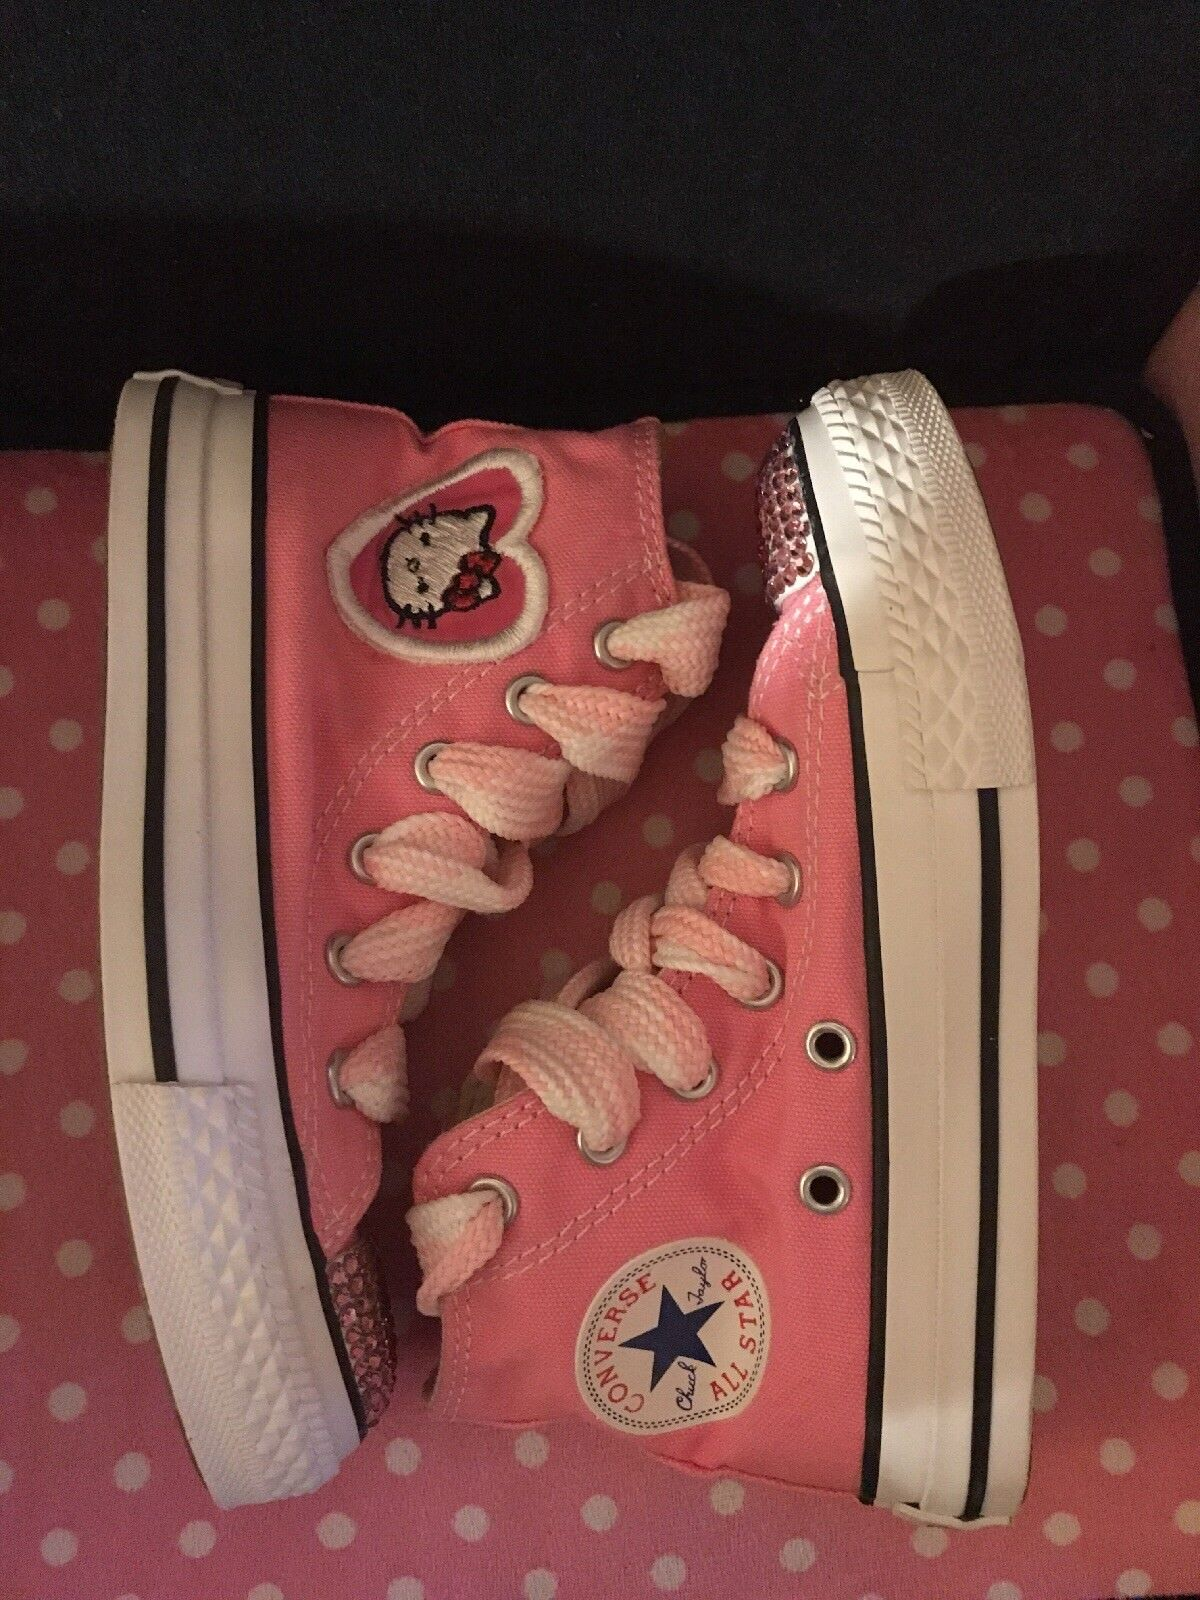 Converse All Star Chuck Taylor Sneakers Hello Kitty pink canvas Size 11 1/2